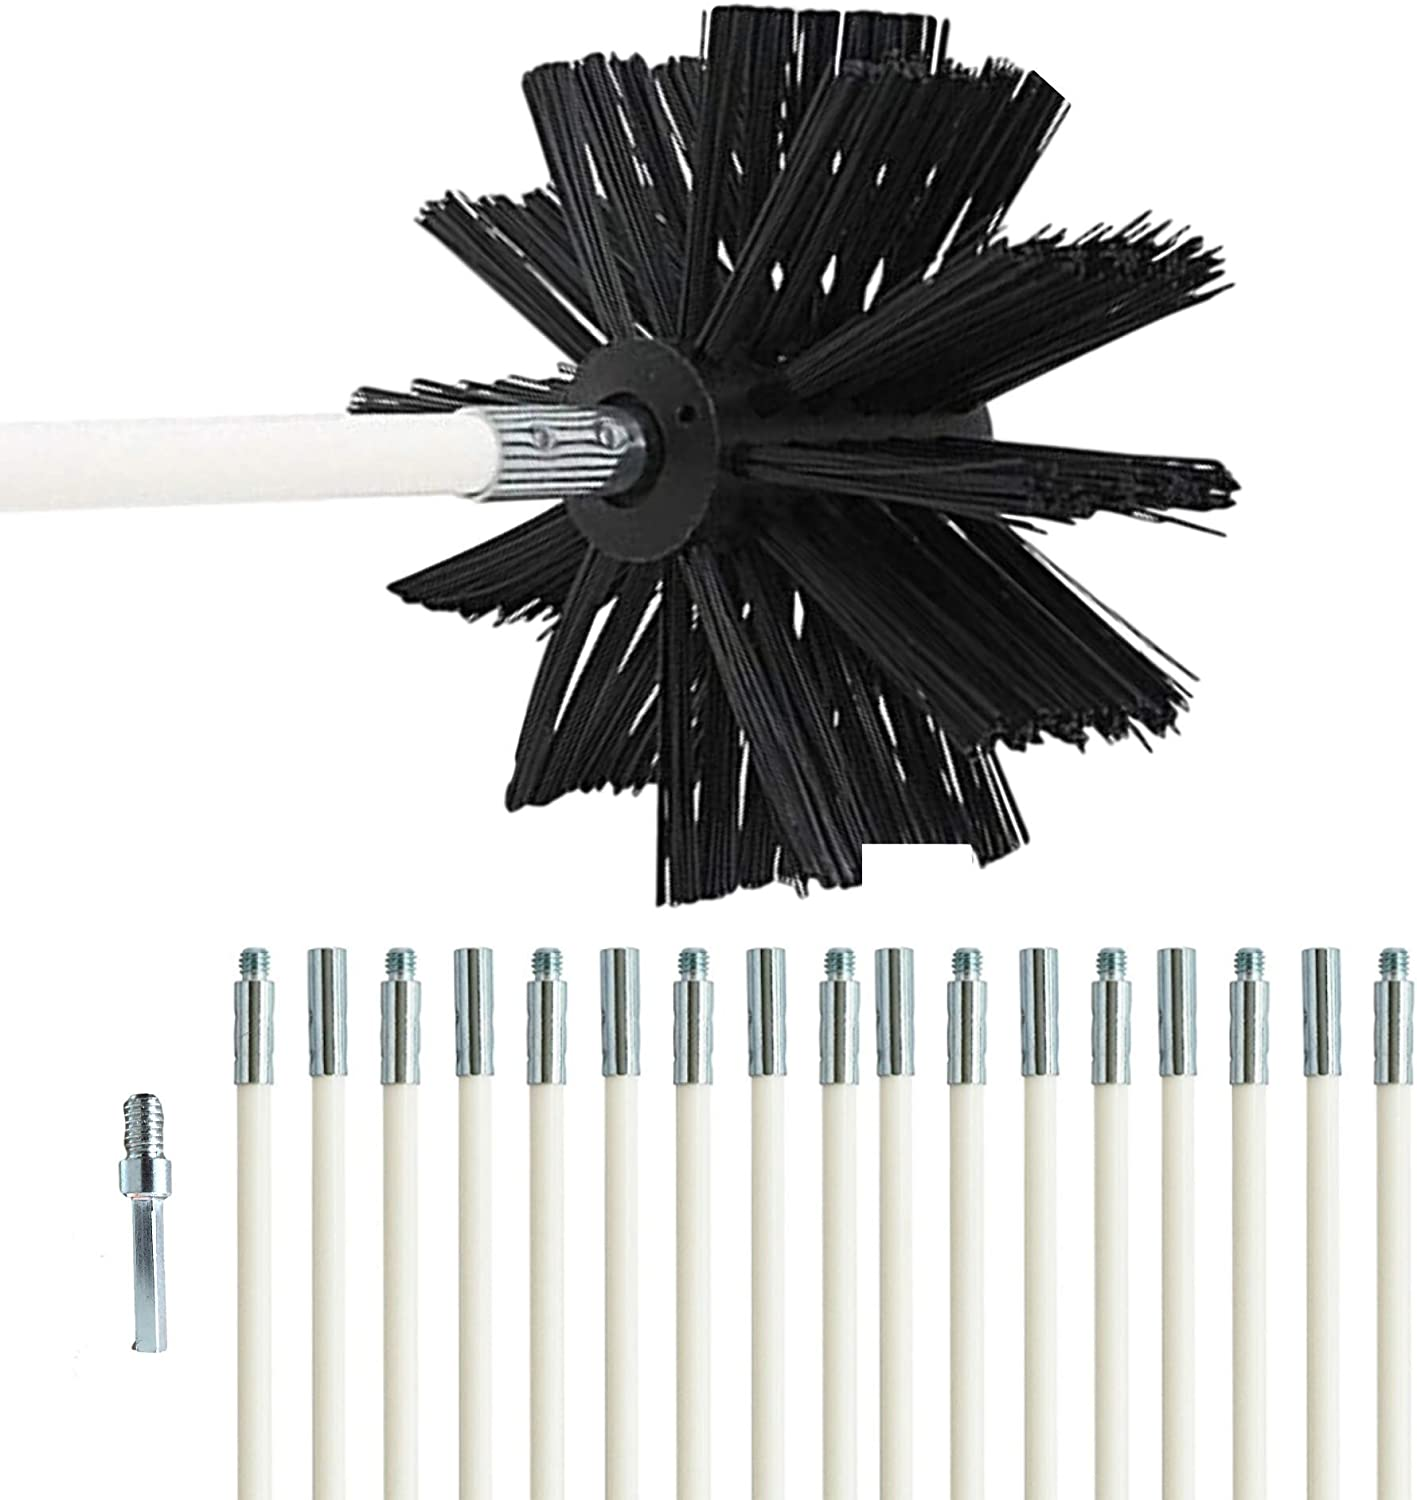 Dryer Vent Cleaning Kit -(24-Feet) Highly Effective Lint Remover Reusable Strong and Flexible Lint Brush with Bonus Drill Adapter Included for Faster Lint Removal. Use with Or Without Drill